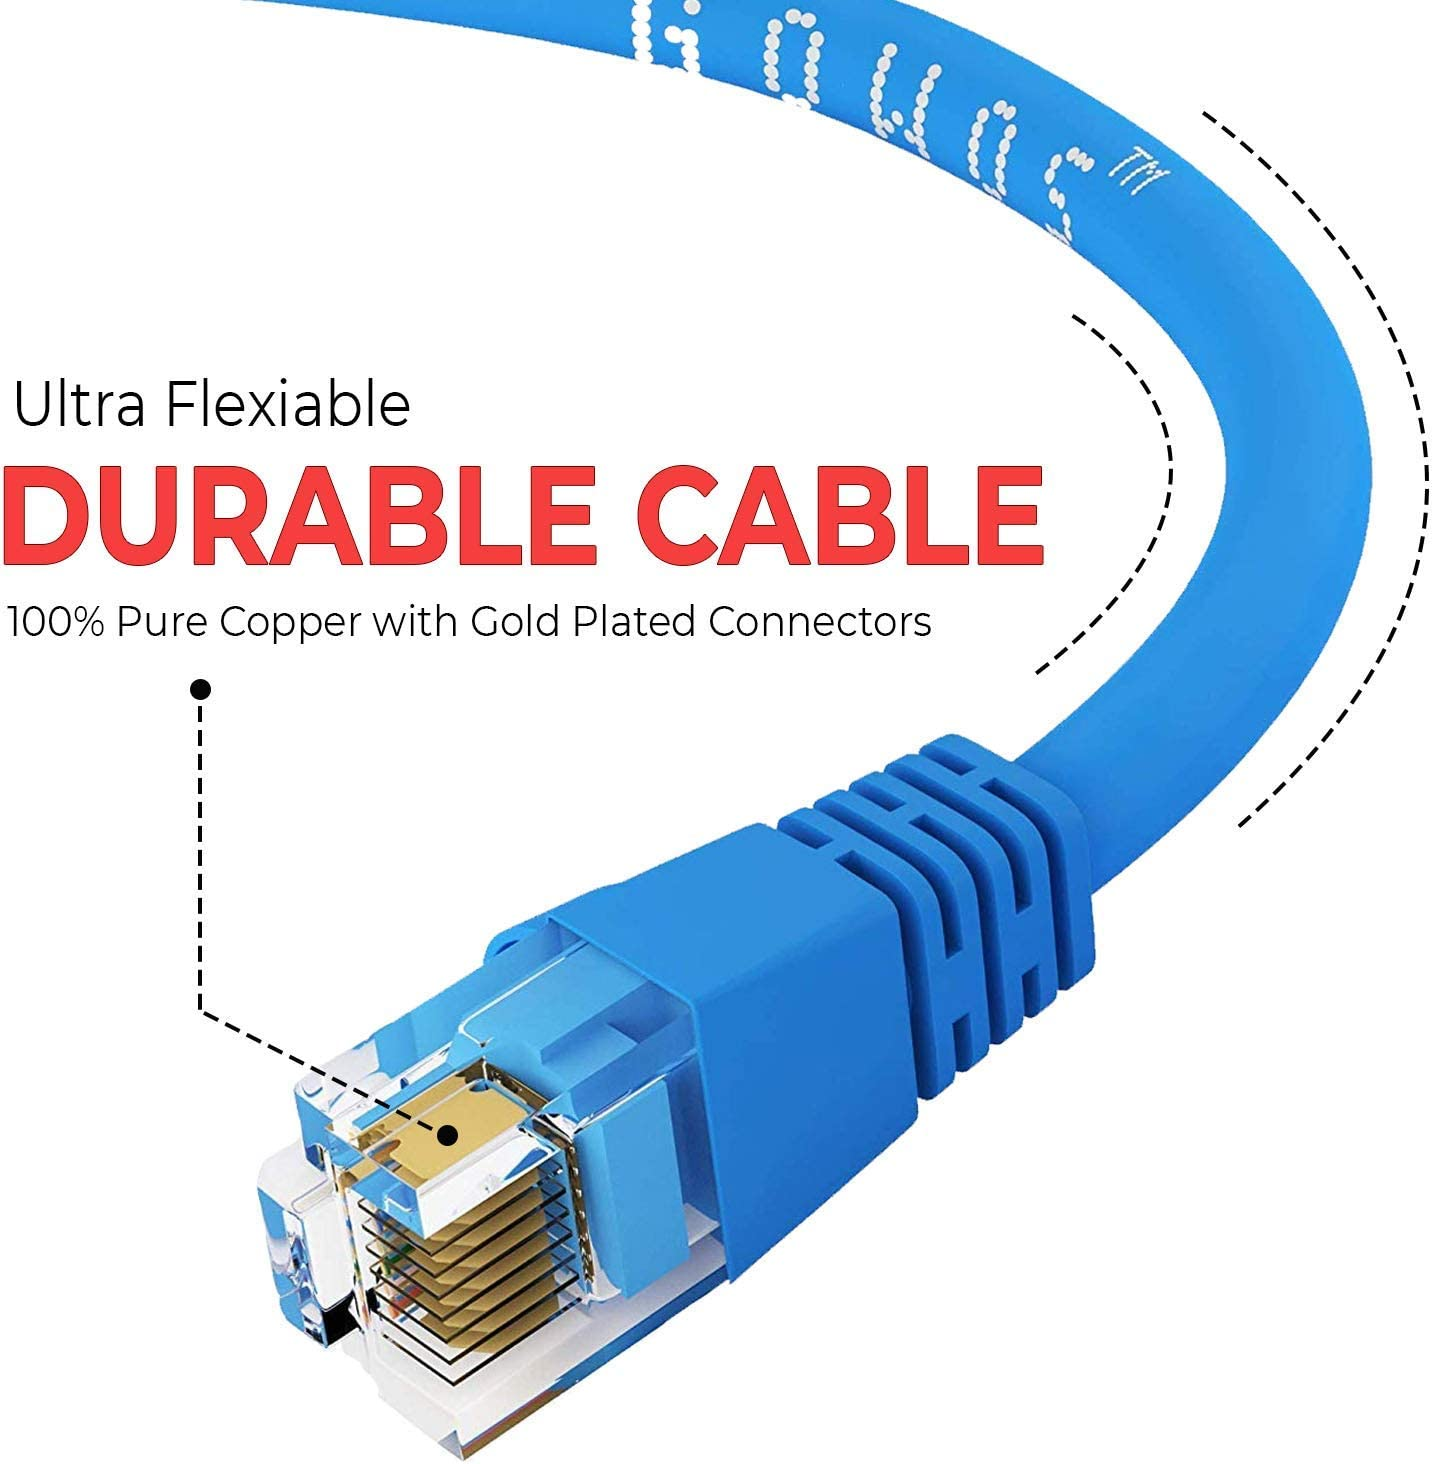 RJ45 10Gbps High Speed LAN Internet Patch Cord GOWOS 5-Pack Available in 28 Lengths and 10 Colors Cat5e Ethernet Cable 6 Feet - Blue UTP Computer Network Cable with Snagless Connector